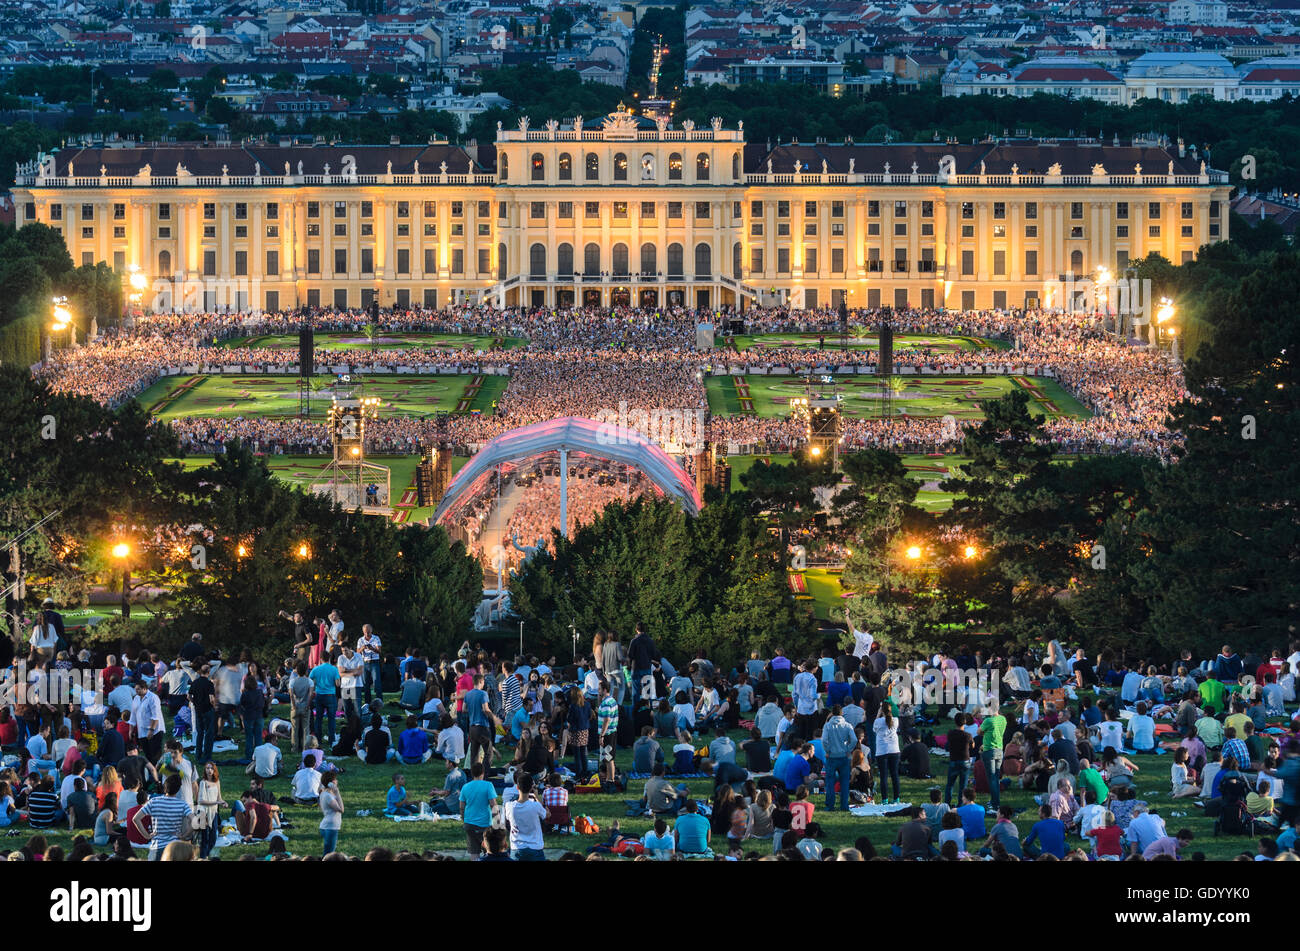 Wien, Vienna: Summer Night Concert of the Vienna Philharmonic in the park of Schönbrunn Palace, Austria, Wien, - Stock Image